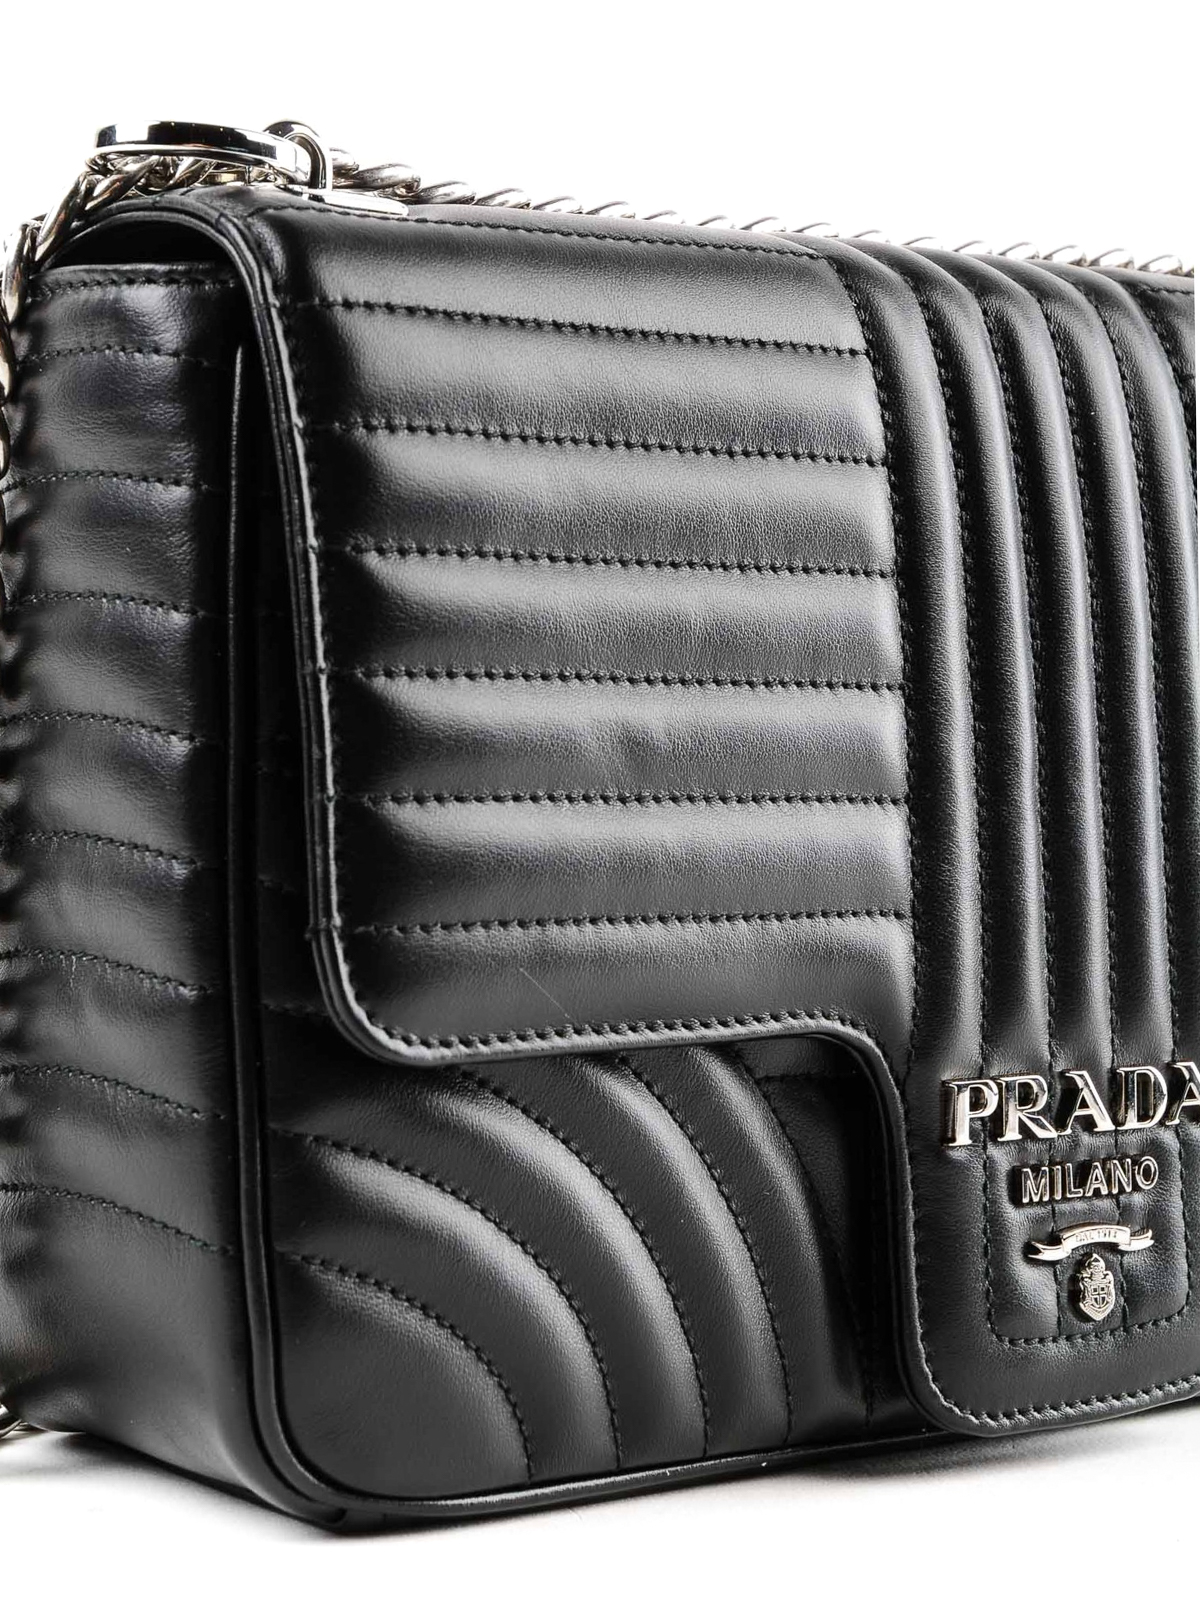 7b5292242f1676 Prada - Diagramme black leather shoulder bag - shoulder bags ...